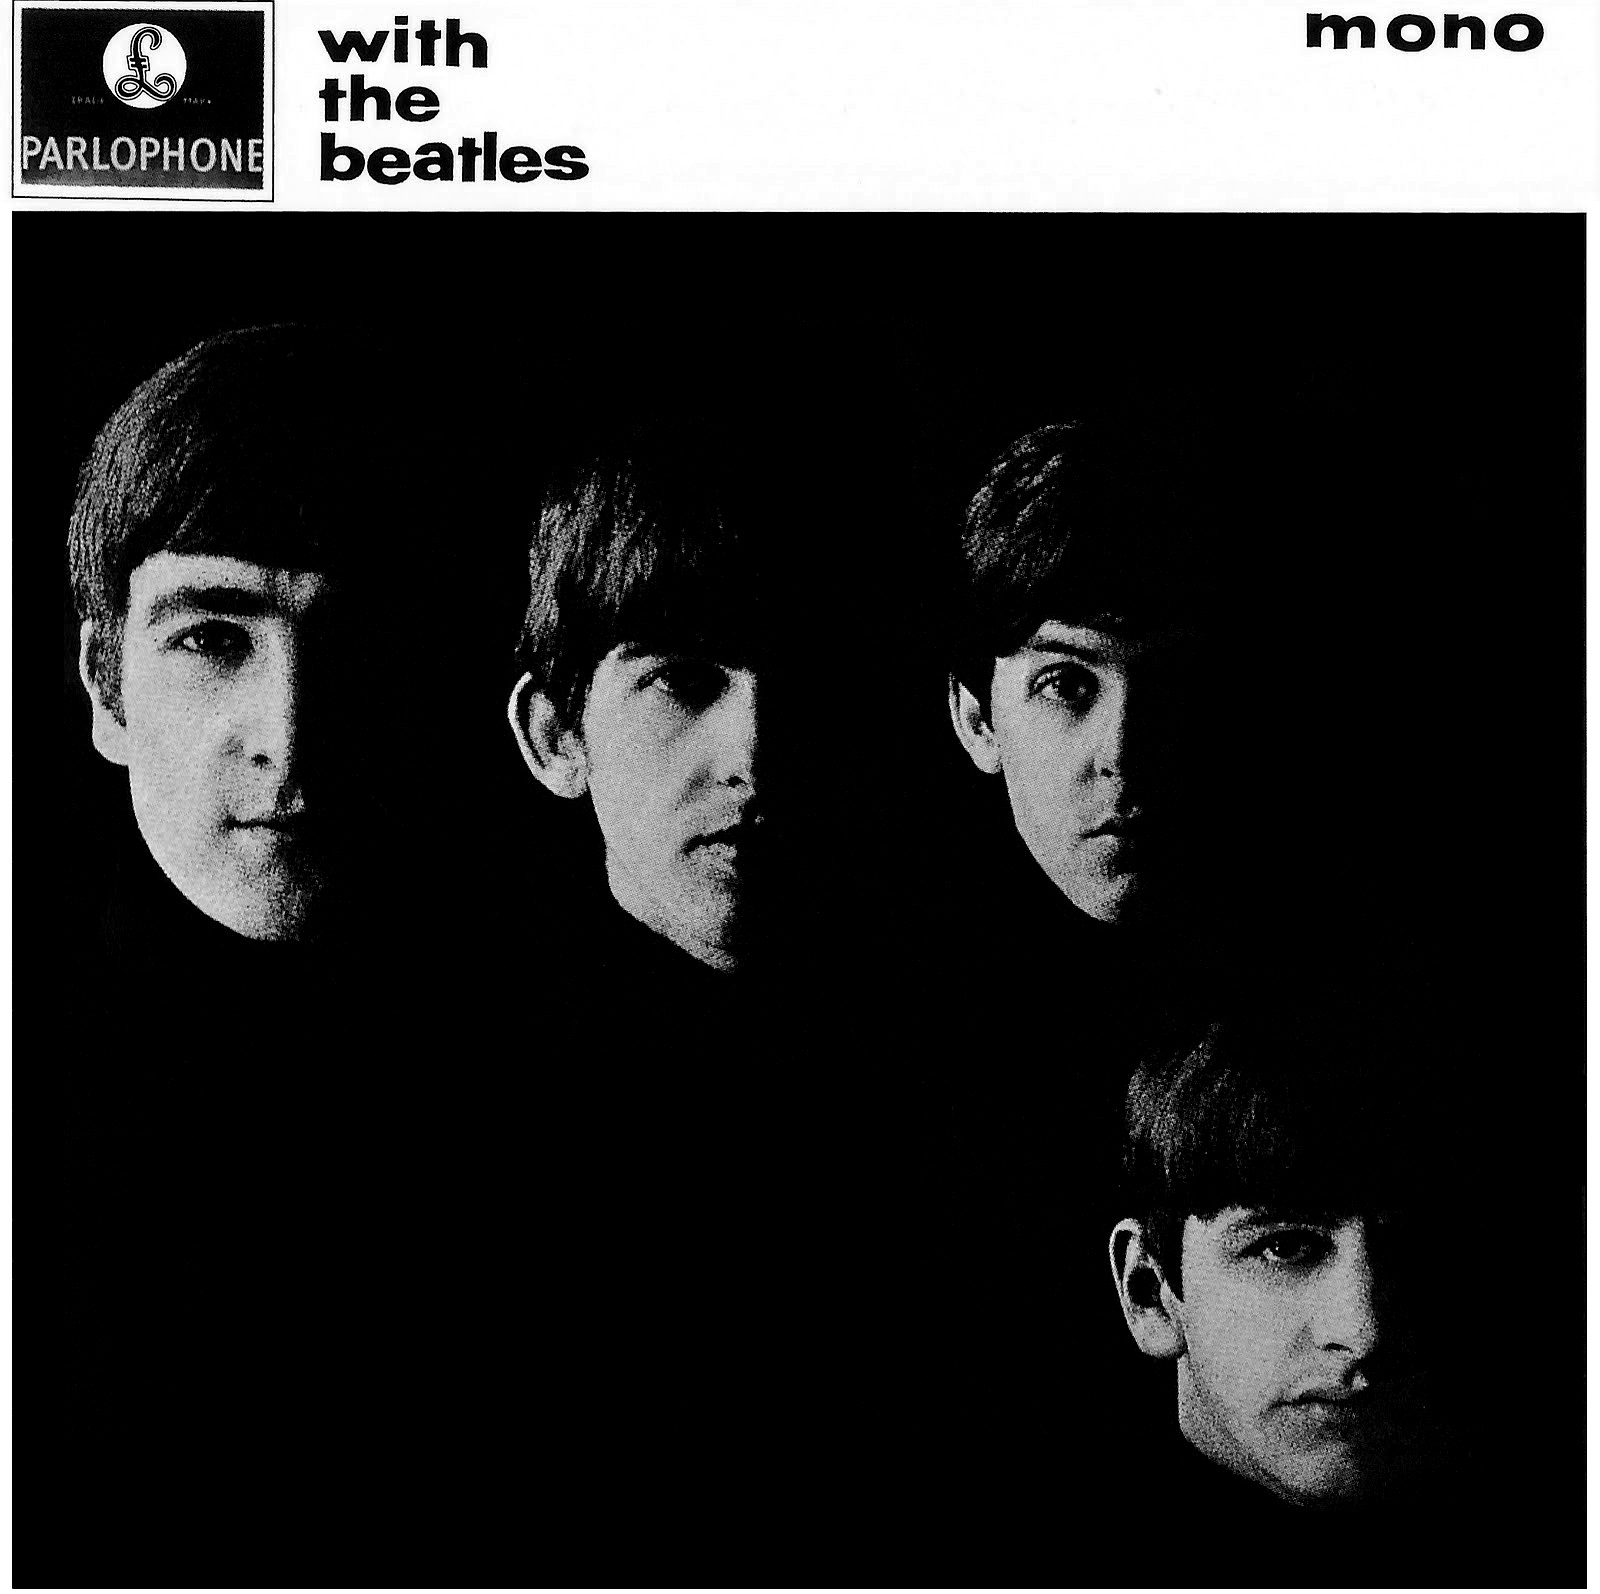 With_The_Beatles_-Mono-.jpg